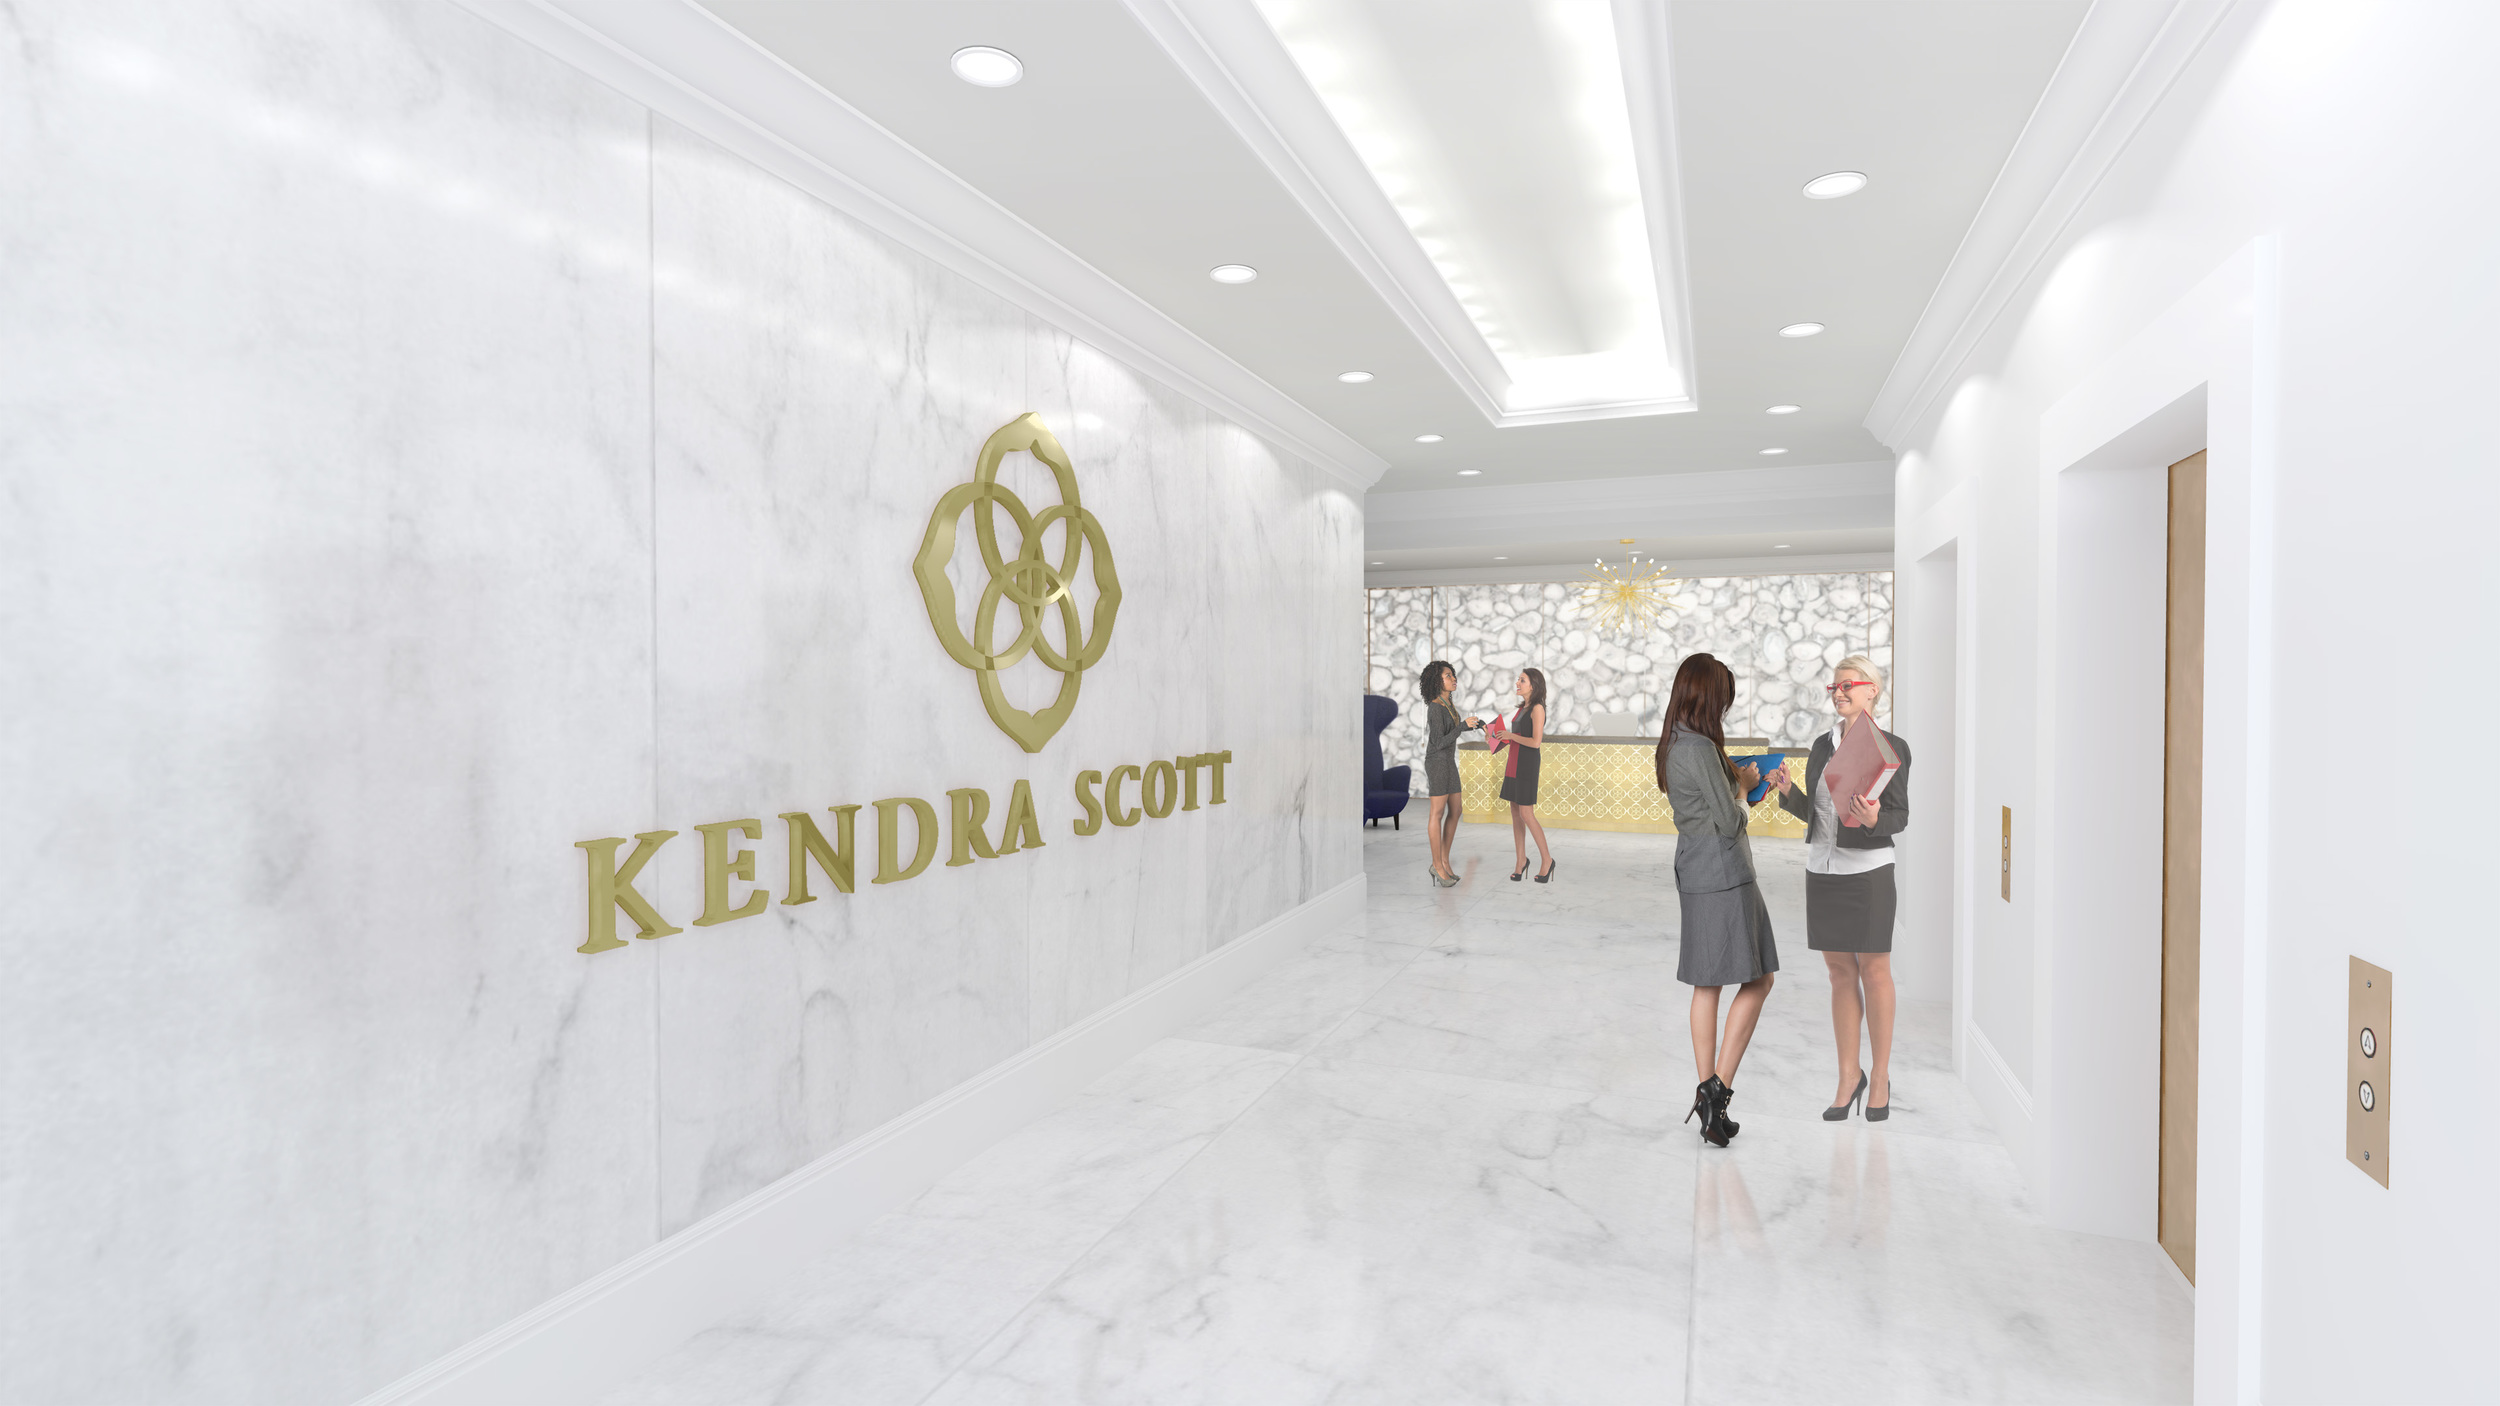 Kendra Scott's corporate headquarters is designed to reflect her particular aesthetic sensibilities. Designers studied aspects of her personal life - such as her home - to determine the ultimate ambiance of her new corporate setting on North Lamar Boulevard.